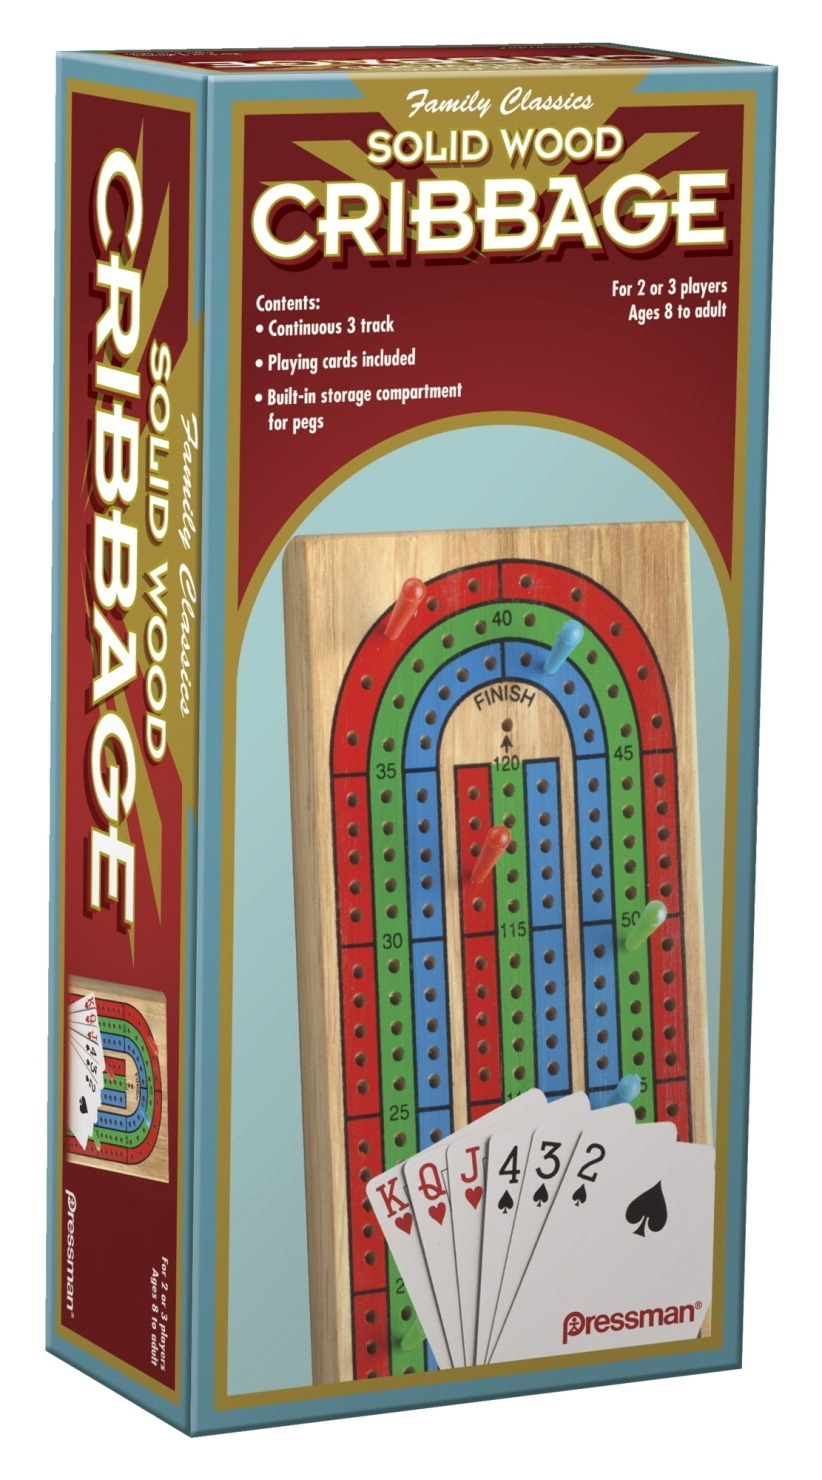 Learning: Supplies Bulletin Boards & Letter Boards Letter Boards & Directory Boards - 1567776 - Pressman Toy Cribbage Board With Cards 1567776